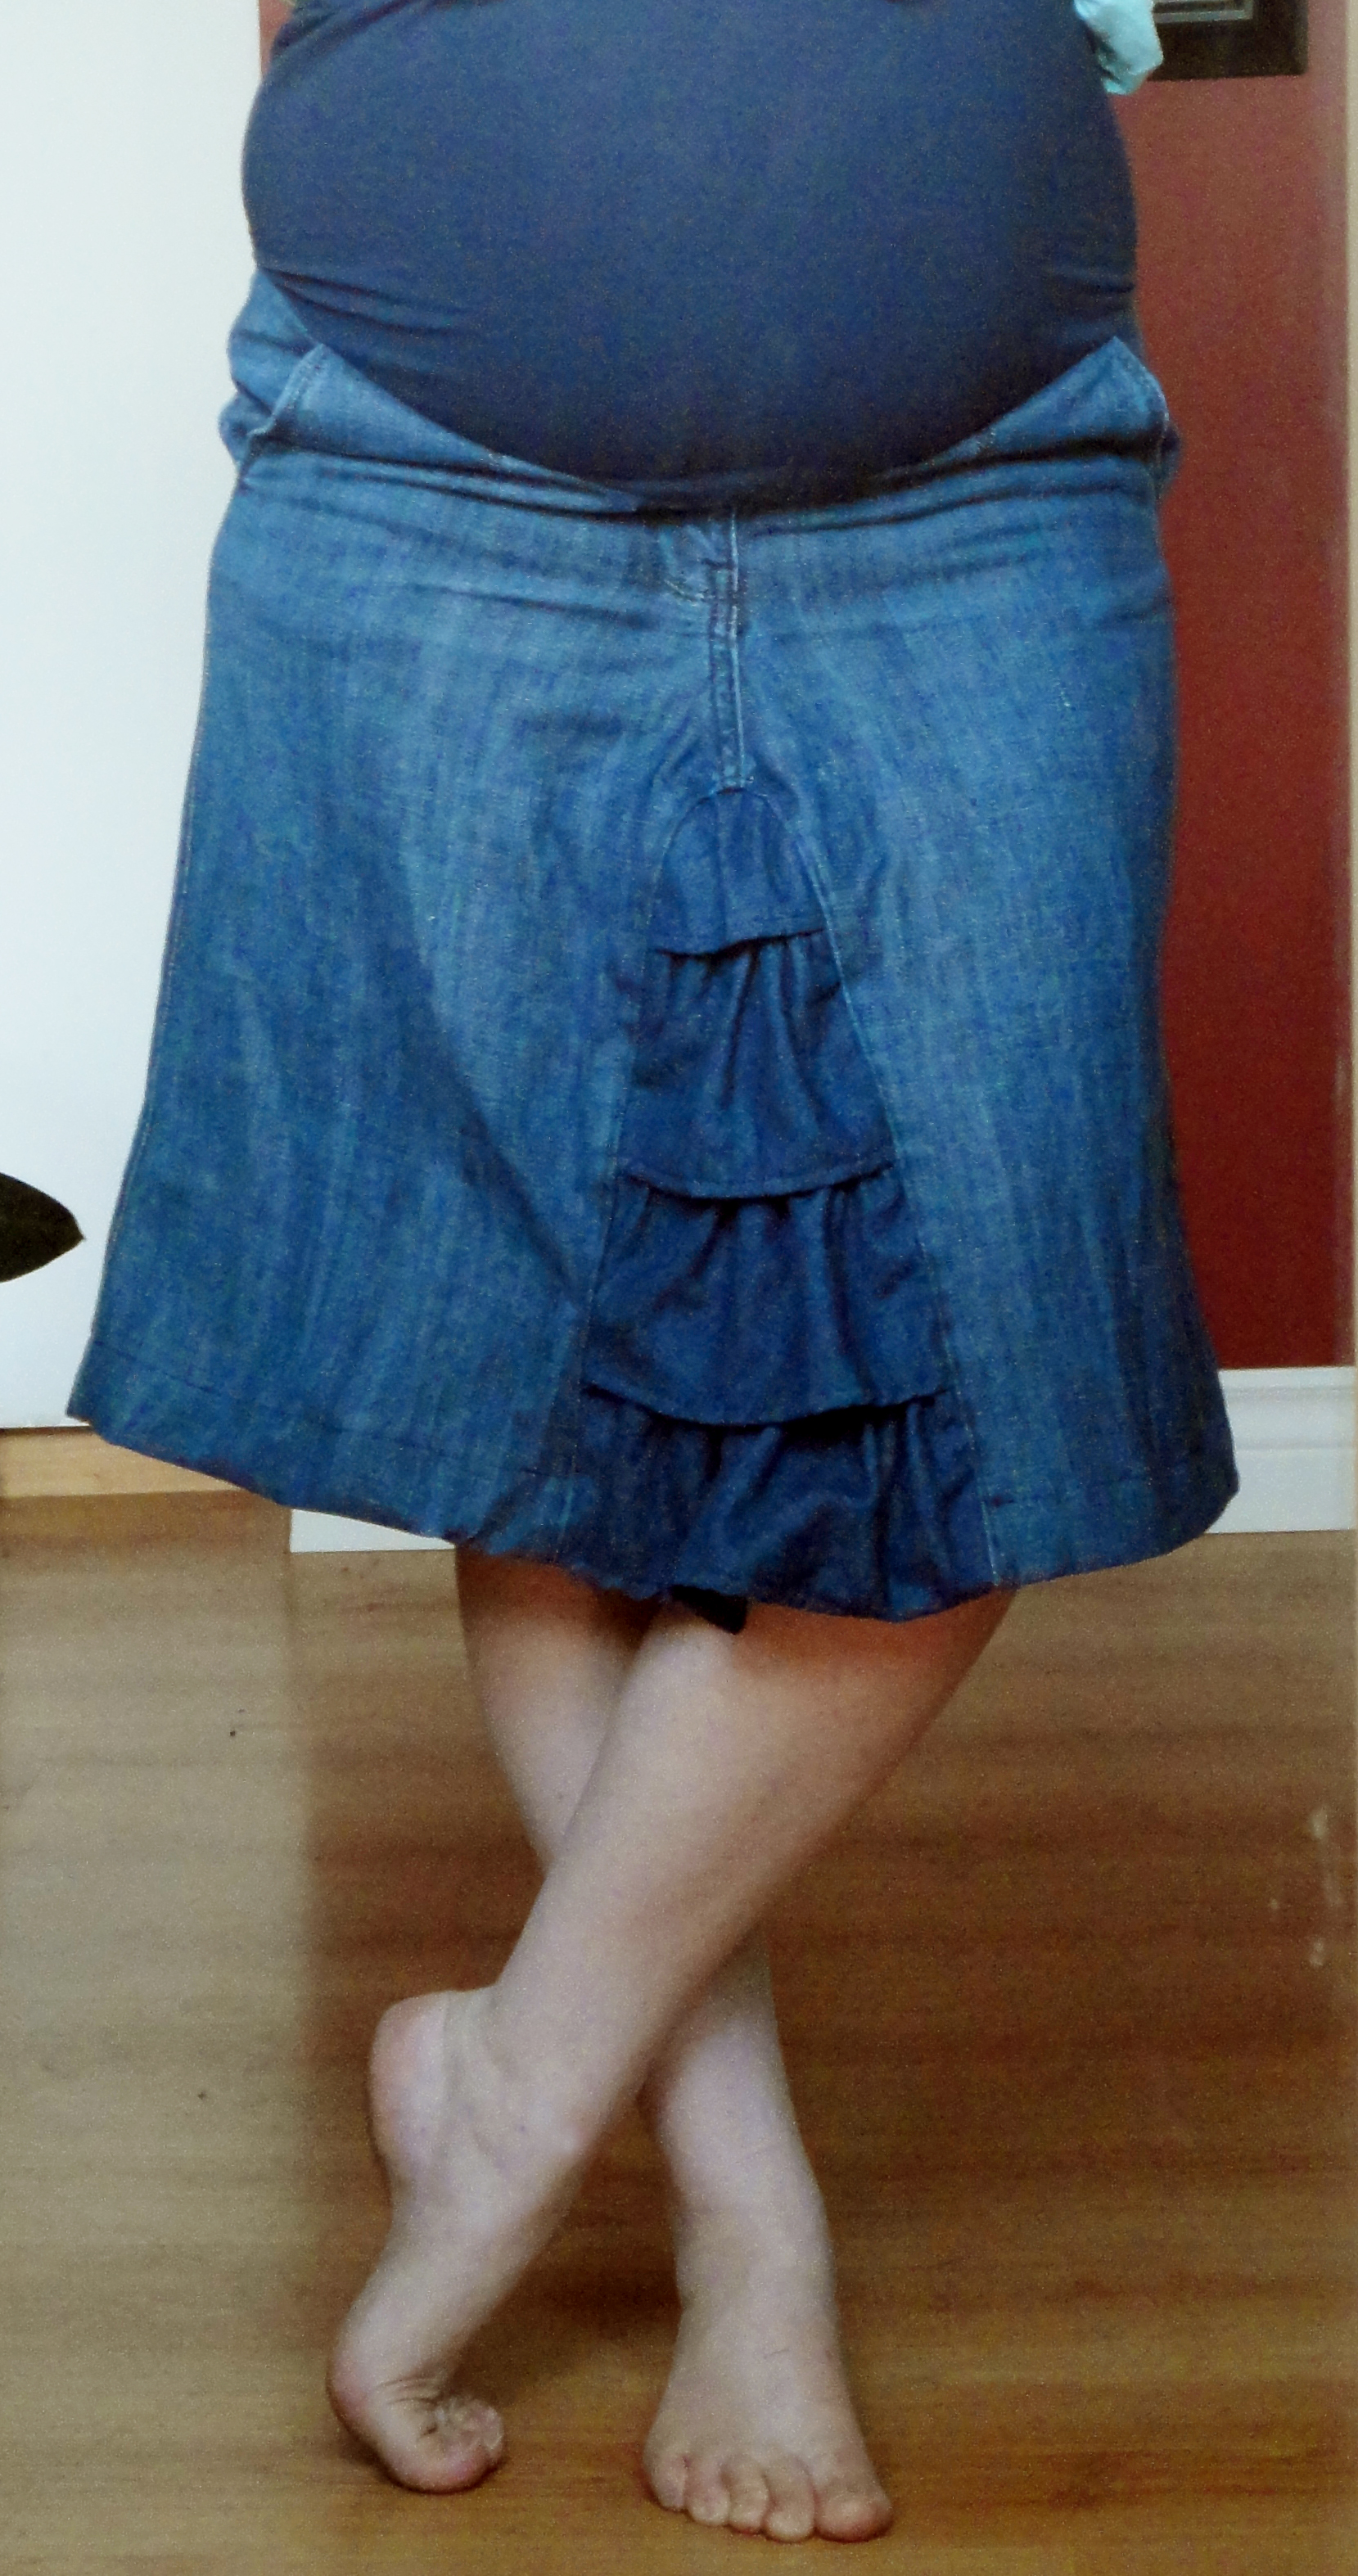 Sew A Ruffled Maternity Skirt from Jeans | The DIY Mommy